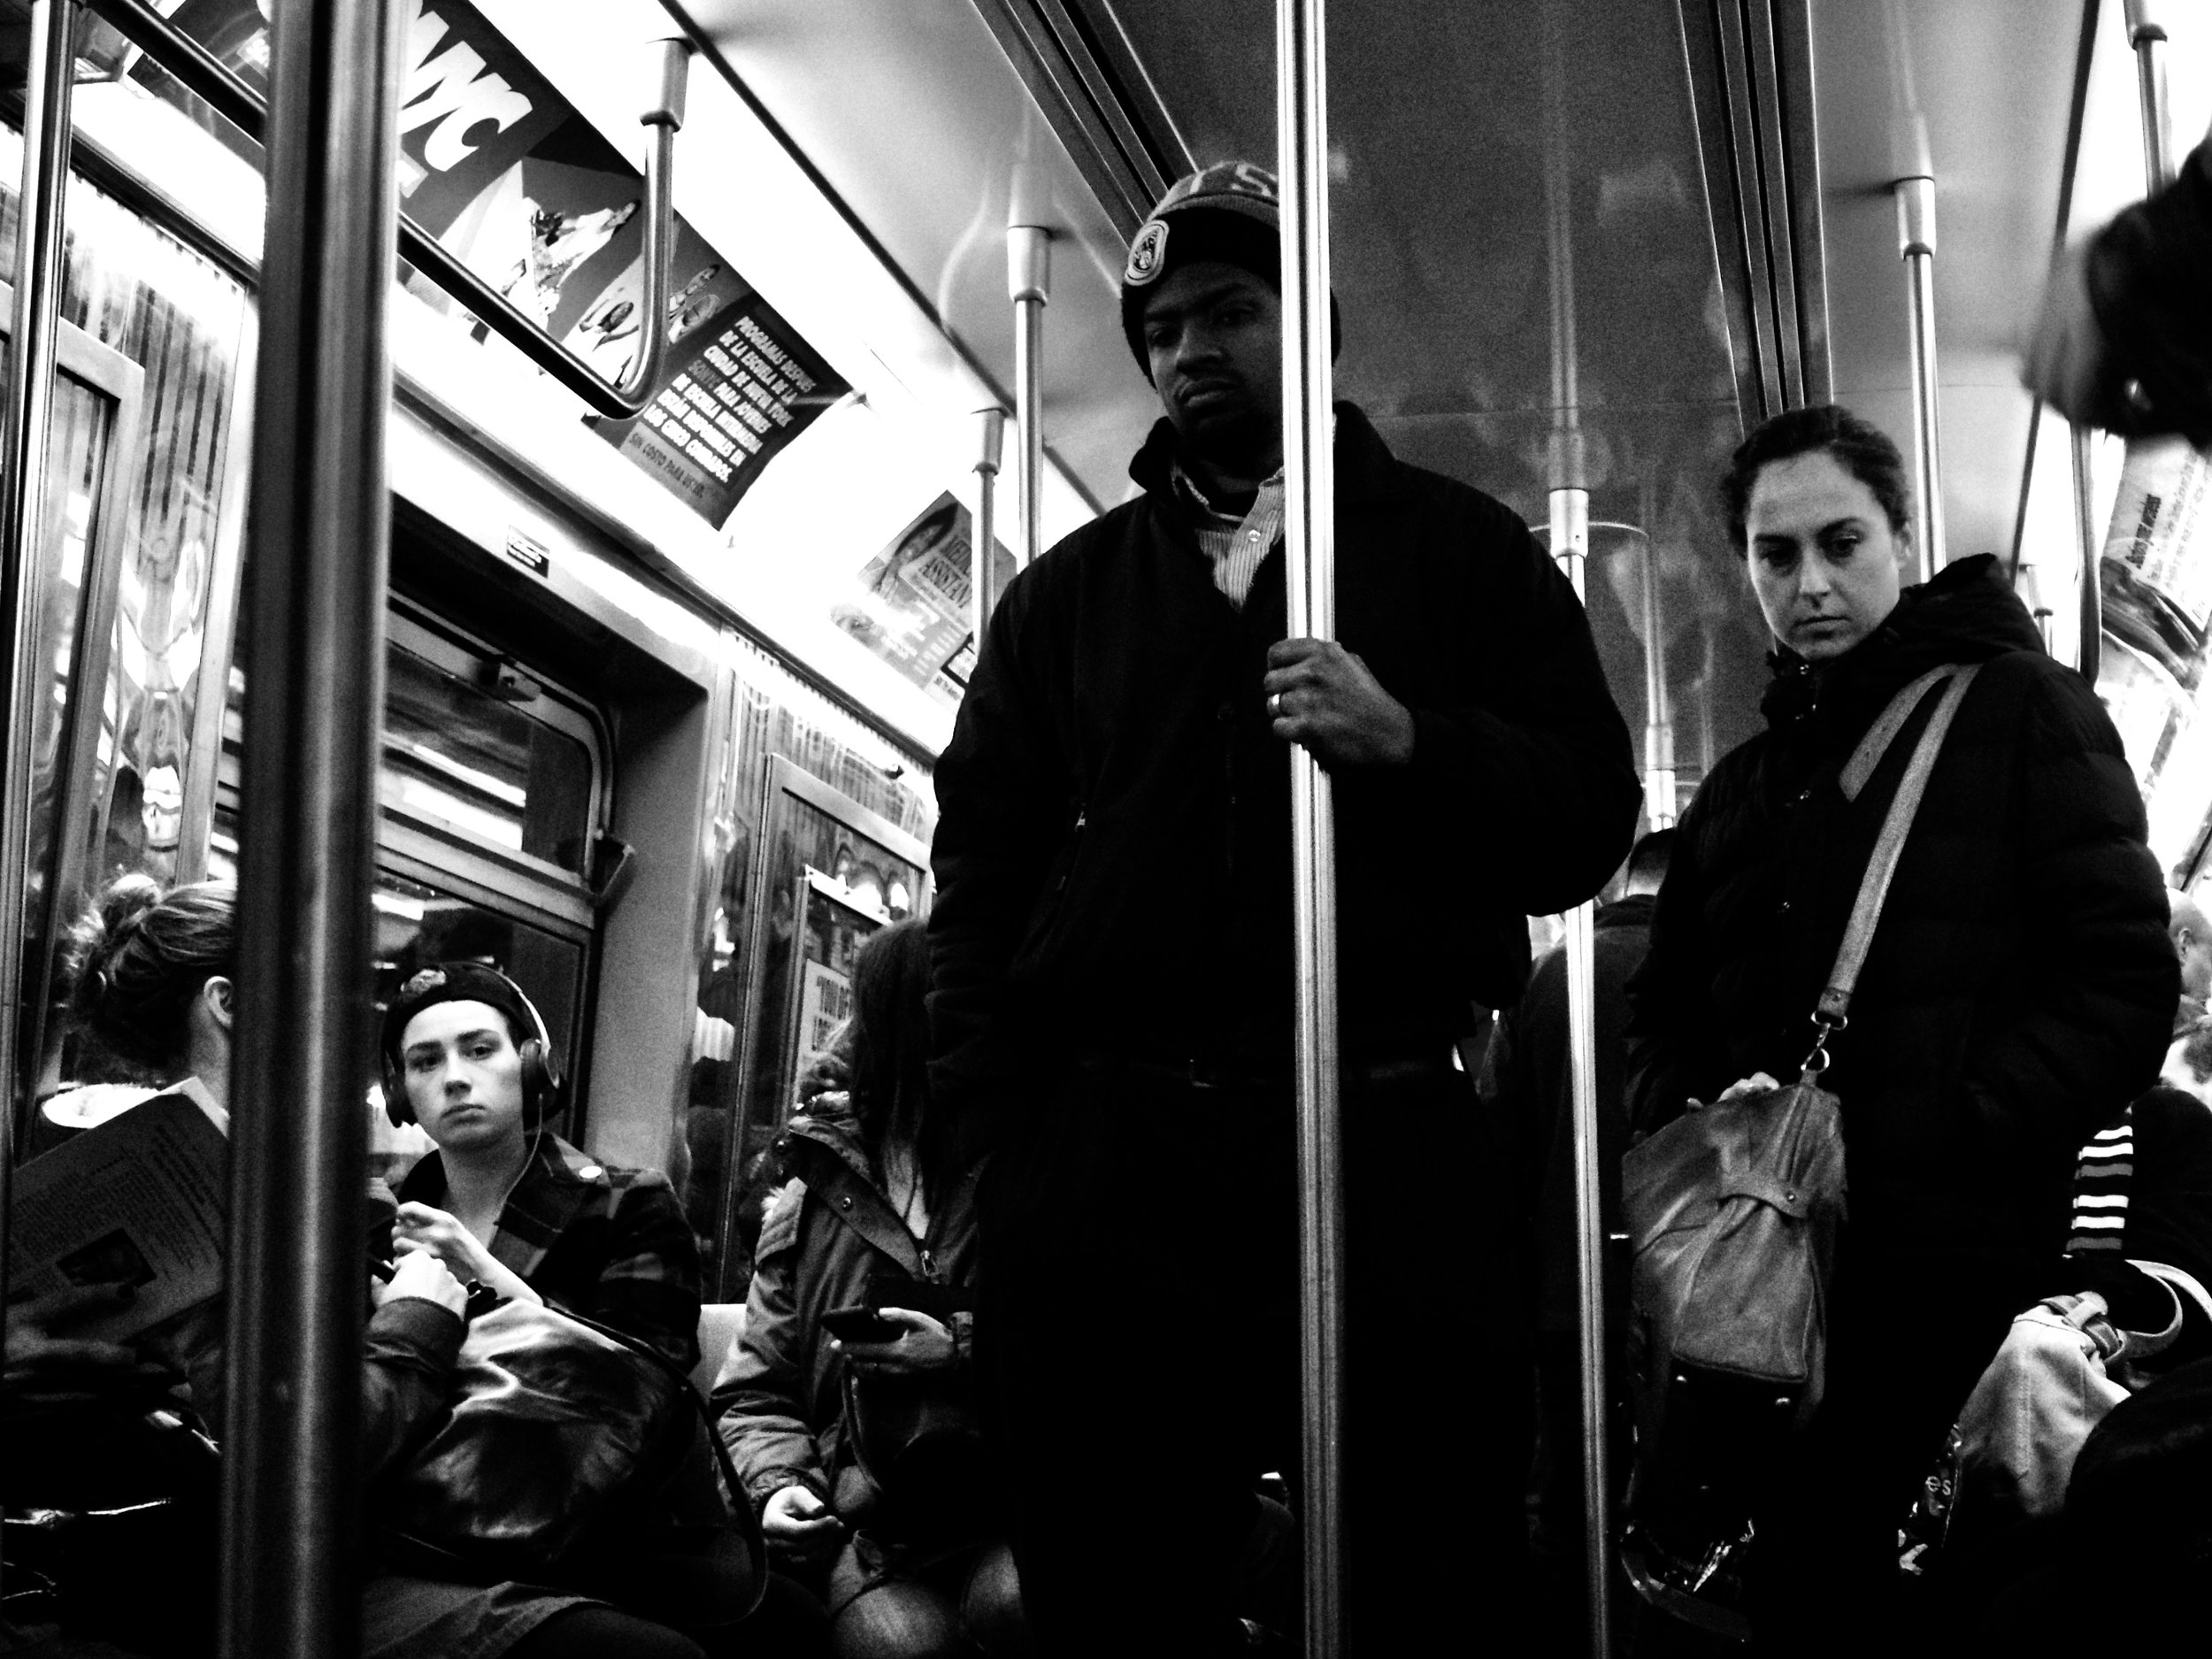 Commuters on a NYC train during rush hour.  Courtesy of Aldon Photos